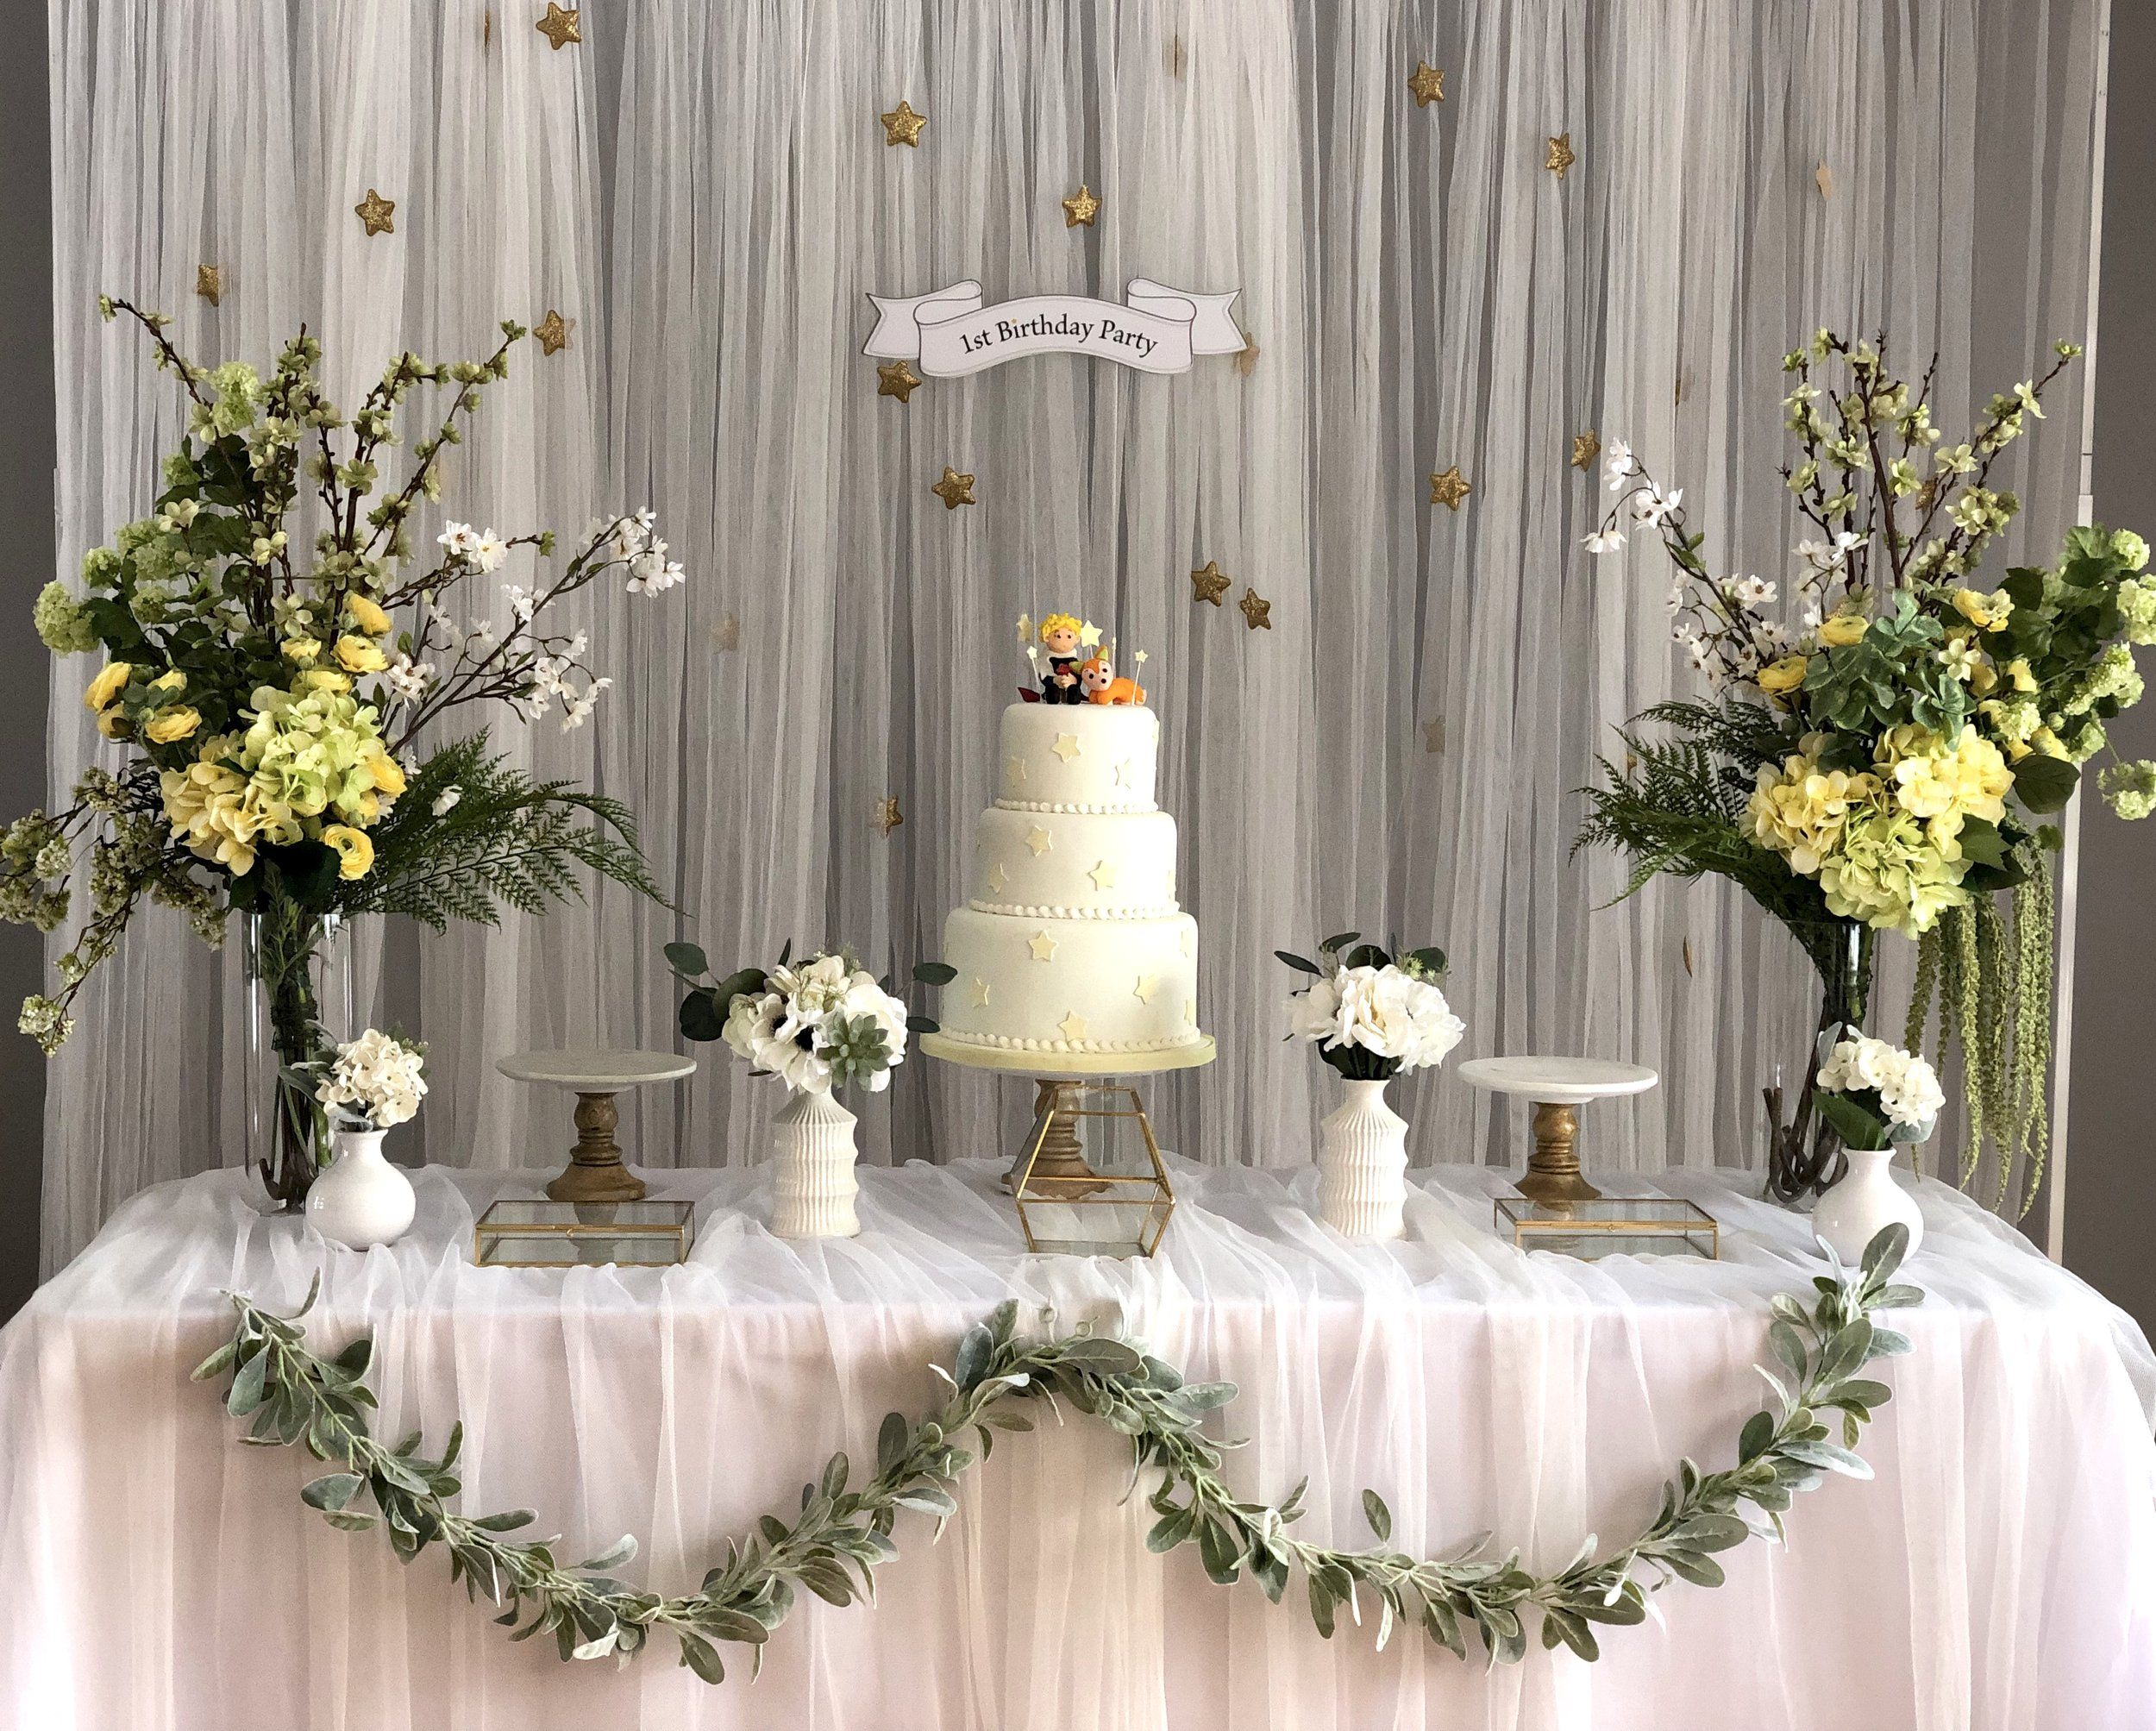 Little Star - Included : Star backdrop, 1st Birthday Party hanging board, 3 cake stands, silk flowers and vases, Display Little Prince 3 layer Cake, Gold glass boxes상품구성: 별 배경, 1st, Birthday Party 행인 보드, 골드박스 3개, 꽃과 화병 2세트, 모형 어린왕자 3단 케익, 케익 스텐드 3개, 작은 꽃 4개Plus, MODERN DOLJABI TABLE & PHOTO TABLE